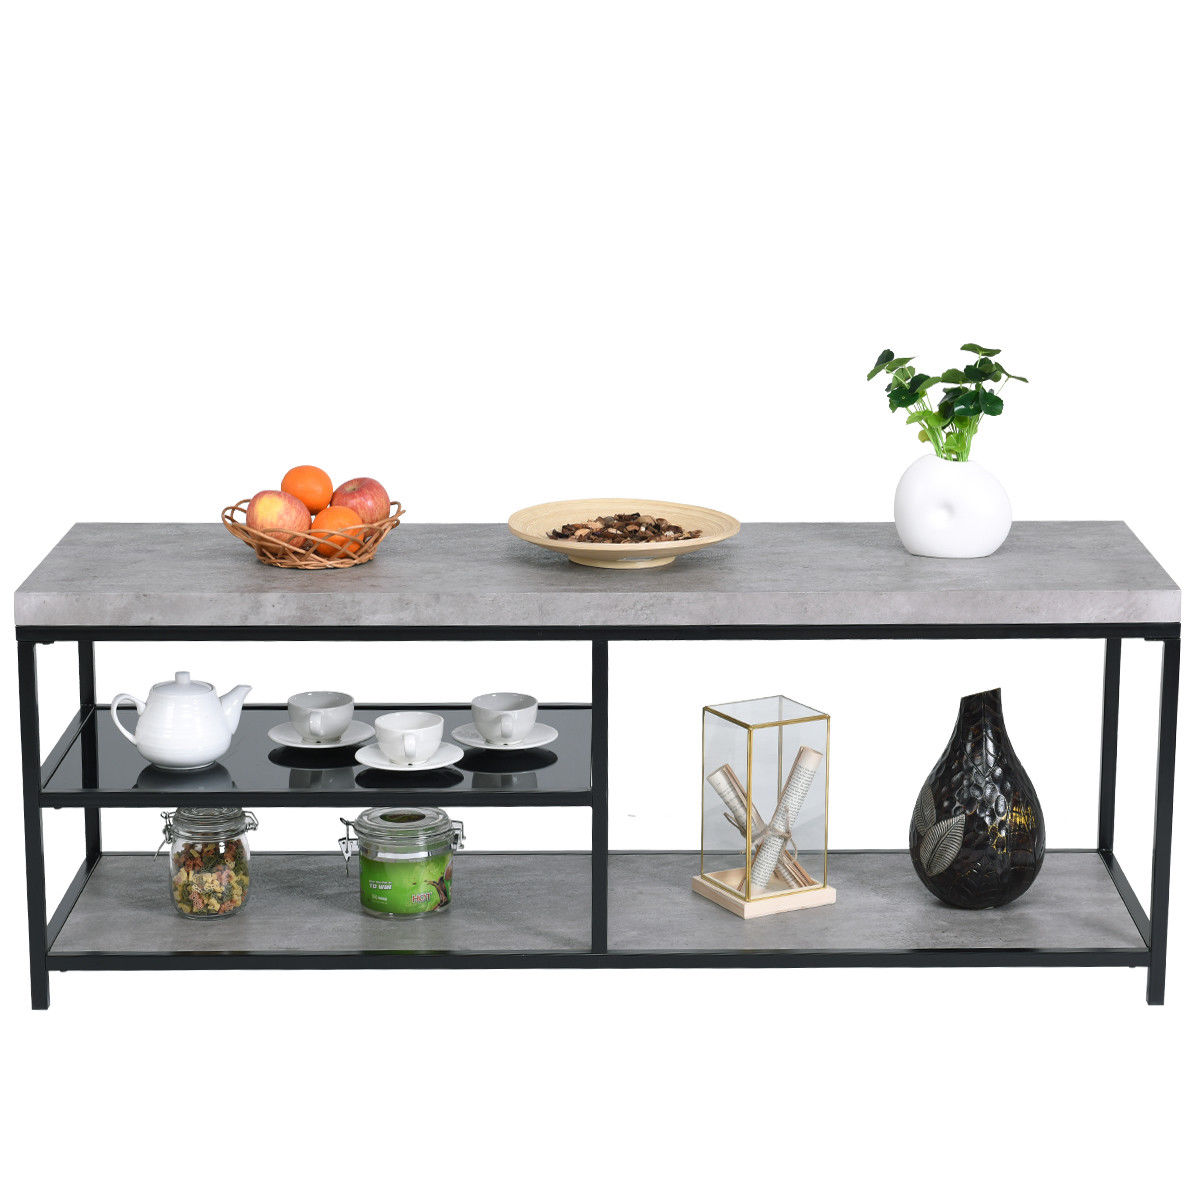 way tier cocktail coffee accent table sofa side tiered metal living room tempered glass beverage tub with stand kmart kids nautical bedroom ideas marble tops black wrought iron